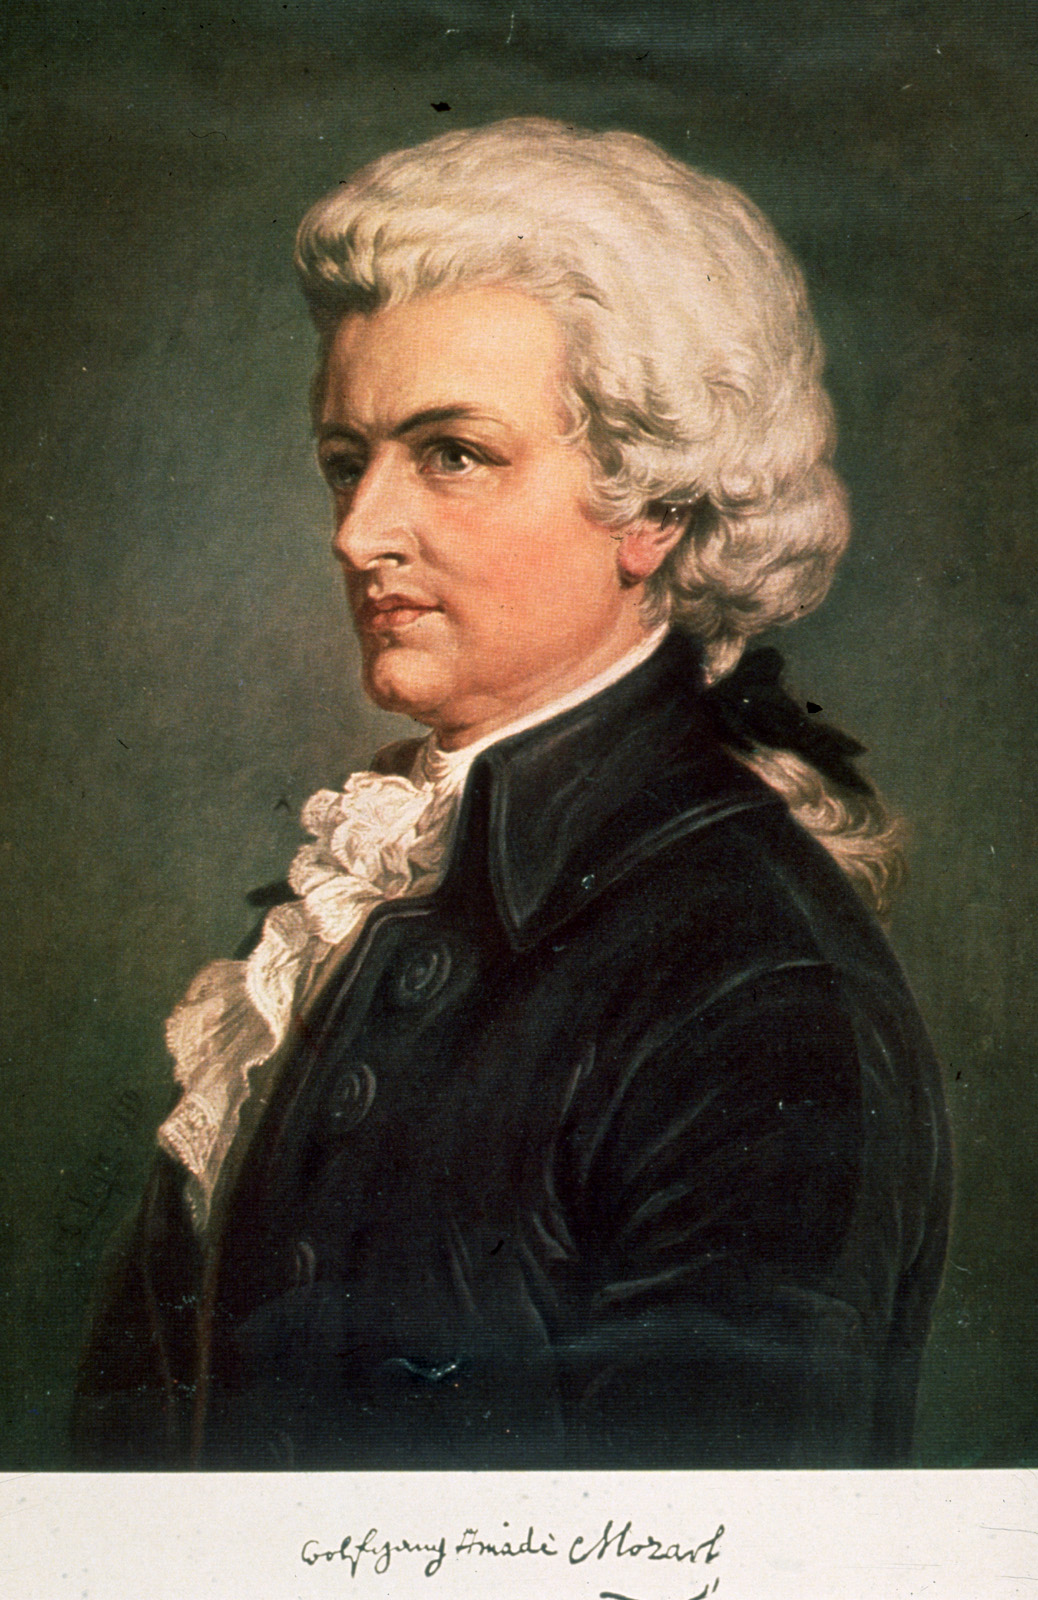 a look at the music career and literary work of wolfgang amadeus mozart Great masters: mozart and his life and music is a biographical and musical study of wolfgang amadeus mozart, who composed more than 600 works of beauty and brilliance in just over 20 years.